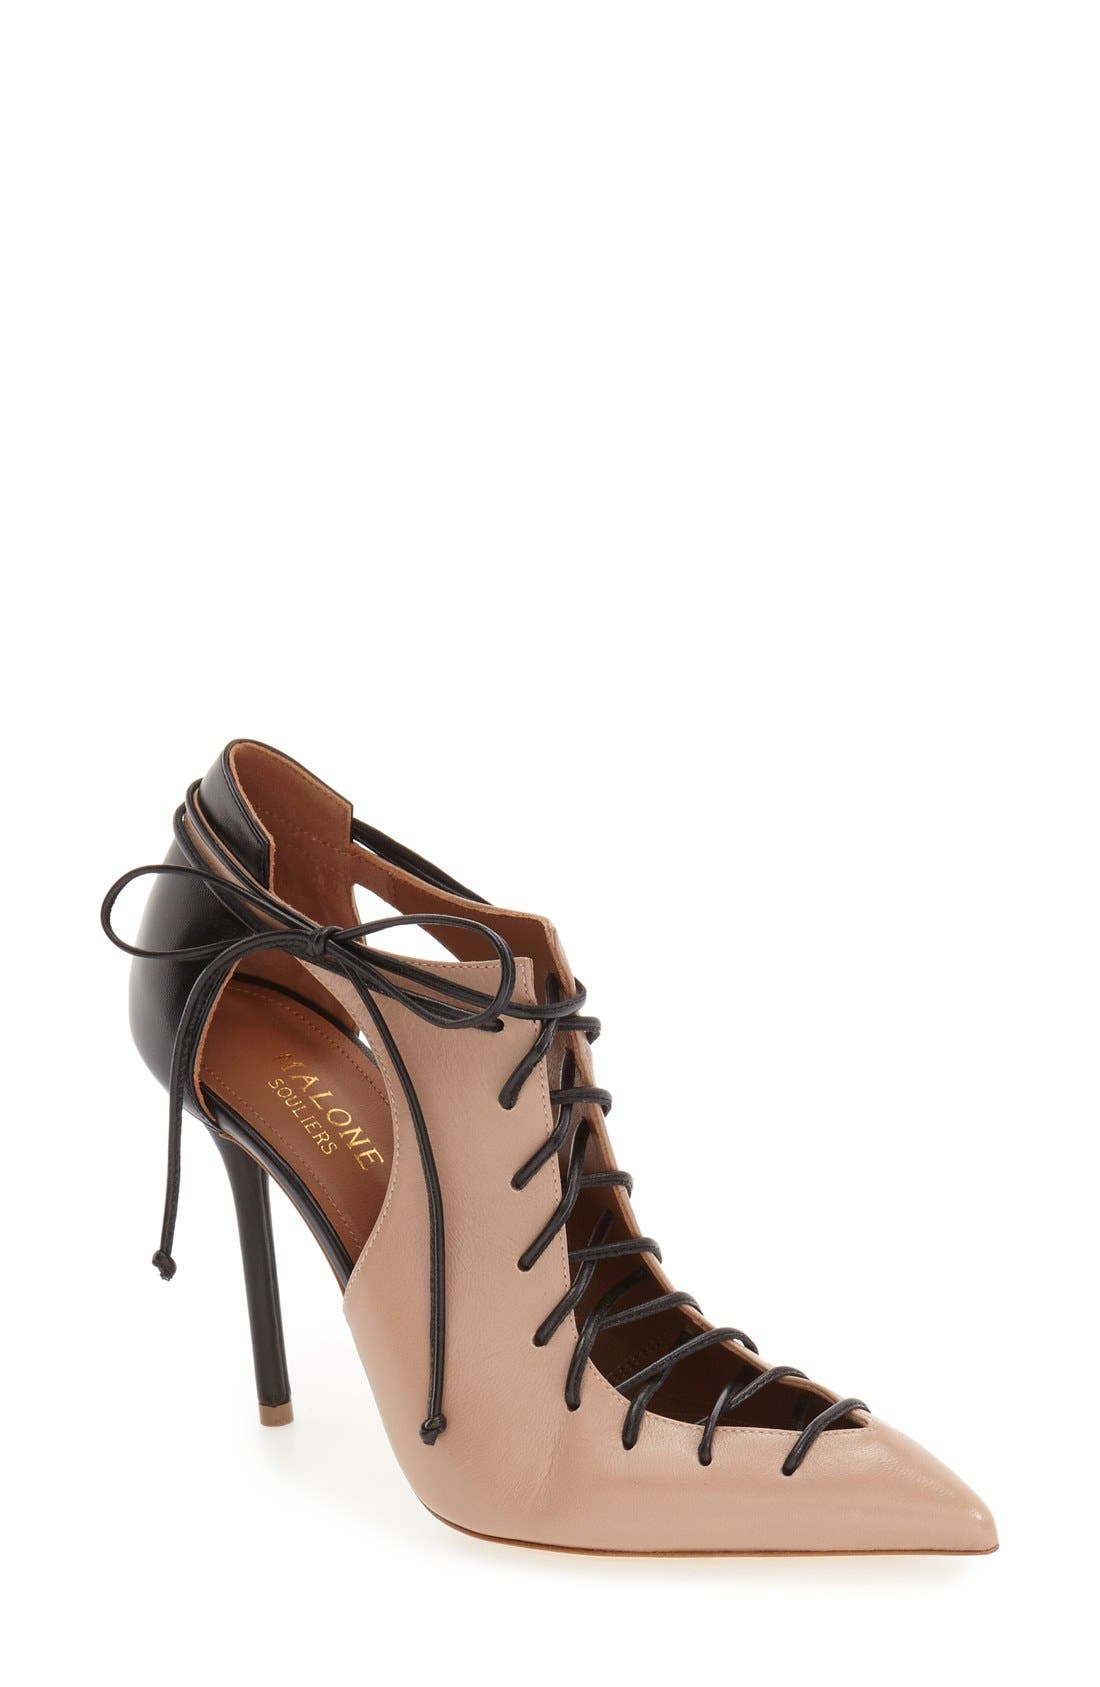 Alternate Image 1 Selected - Malone Souliers 'Montana' Pointy Toe Pump (Women)